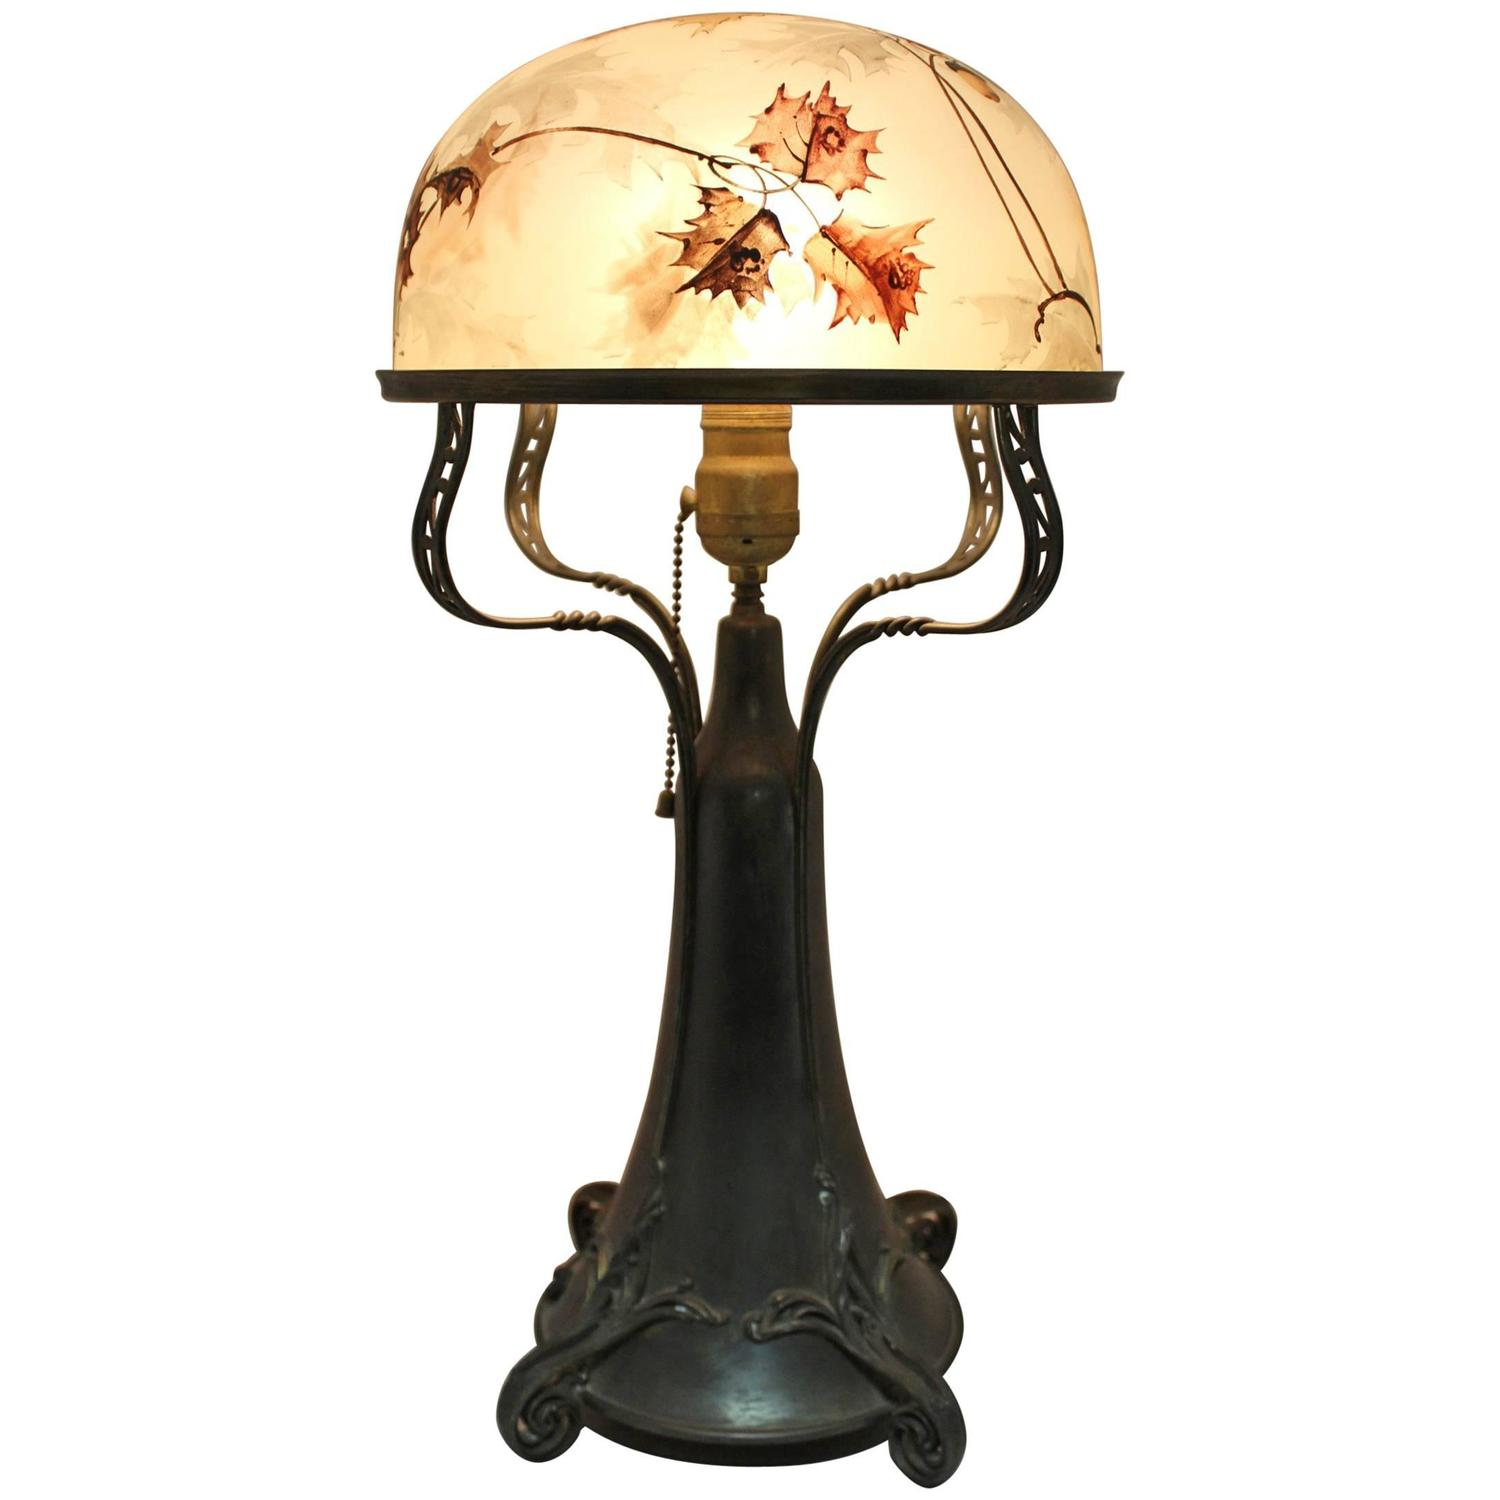 Set of art nouveau italian table lamp shades with three large art nouveau pairpoint dome shade table lamp with oak leaf and acorn motif geotapseo Image collections